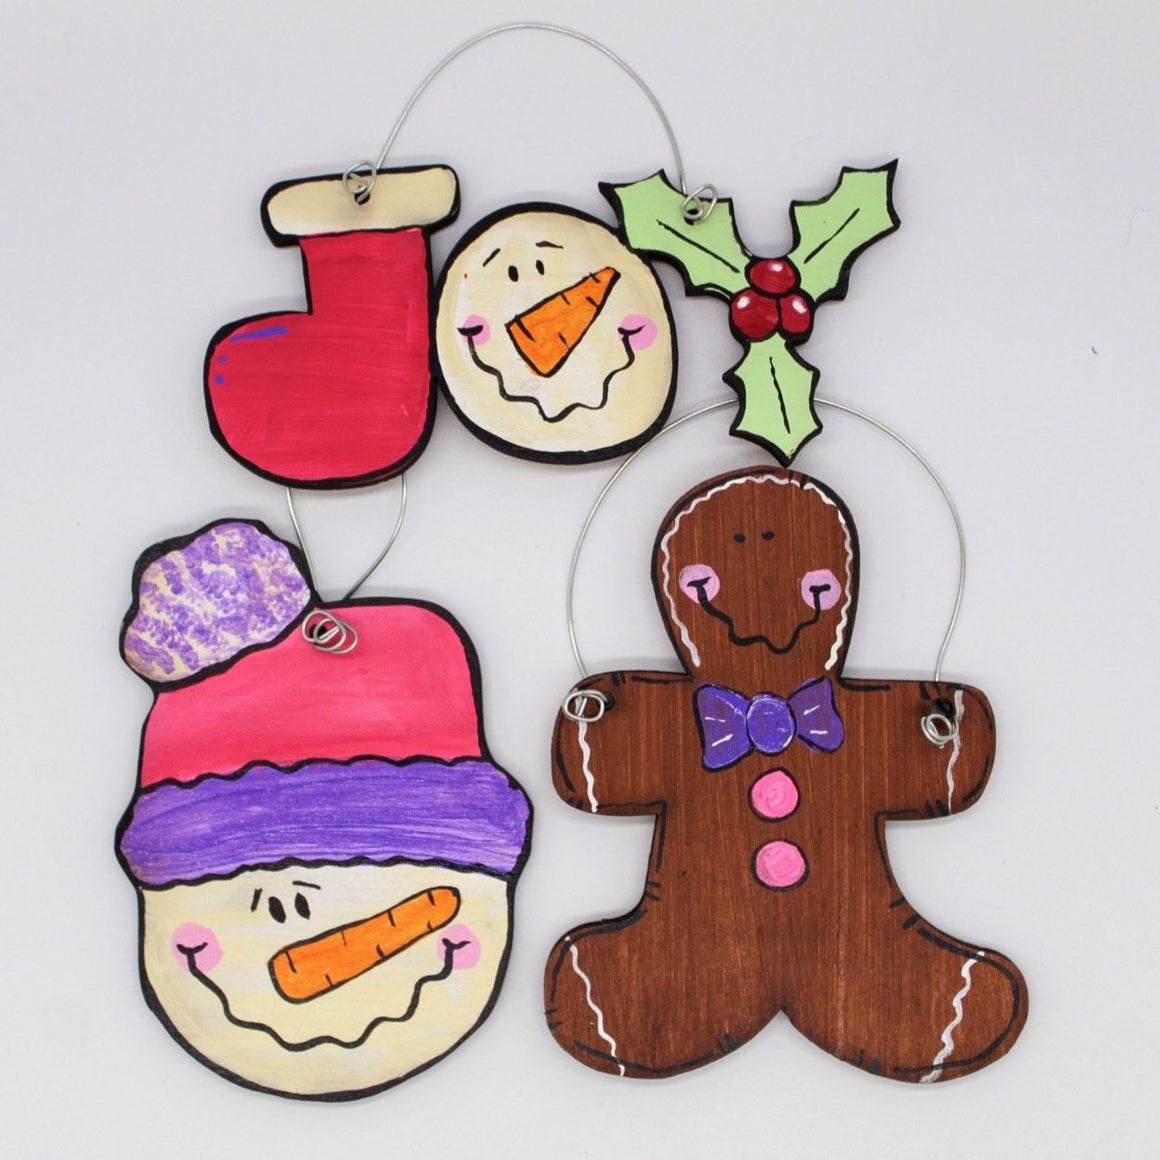 Hand Painted Ornaments with Just Real Woodcrafts - Columbus - November 20